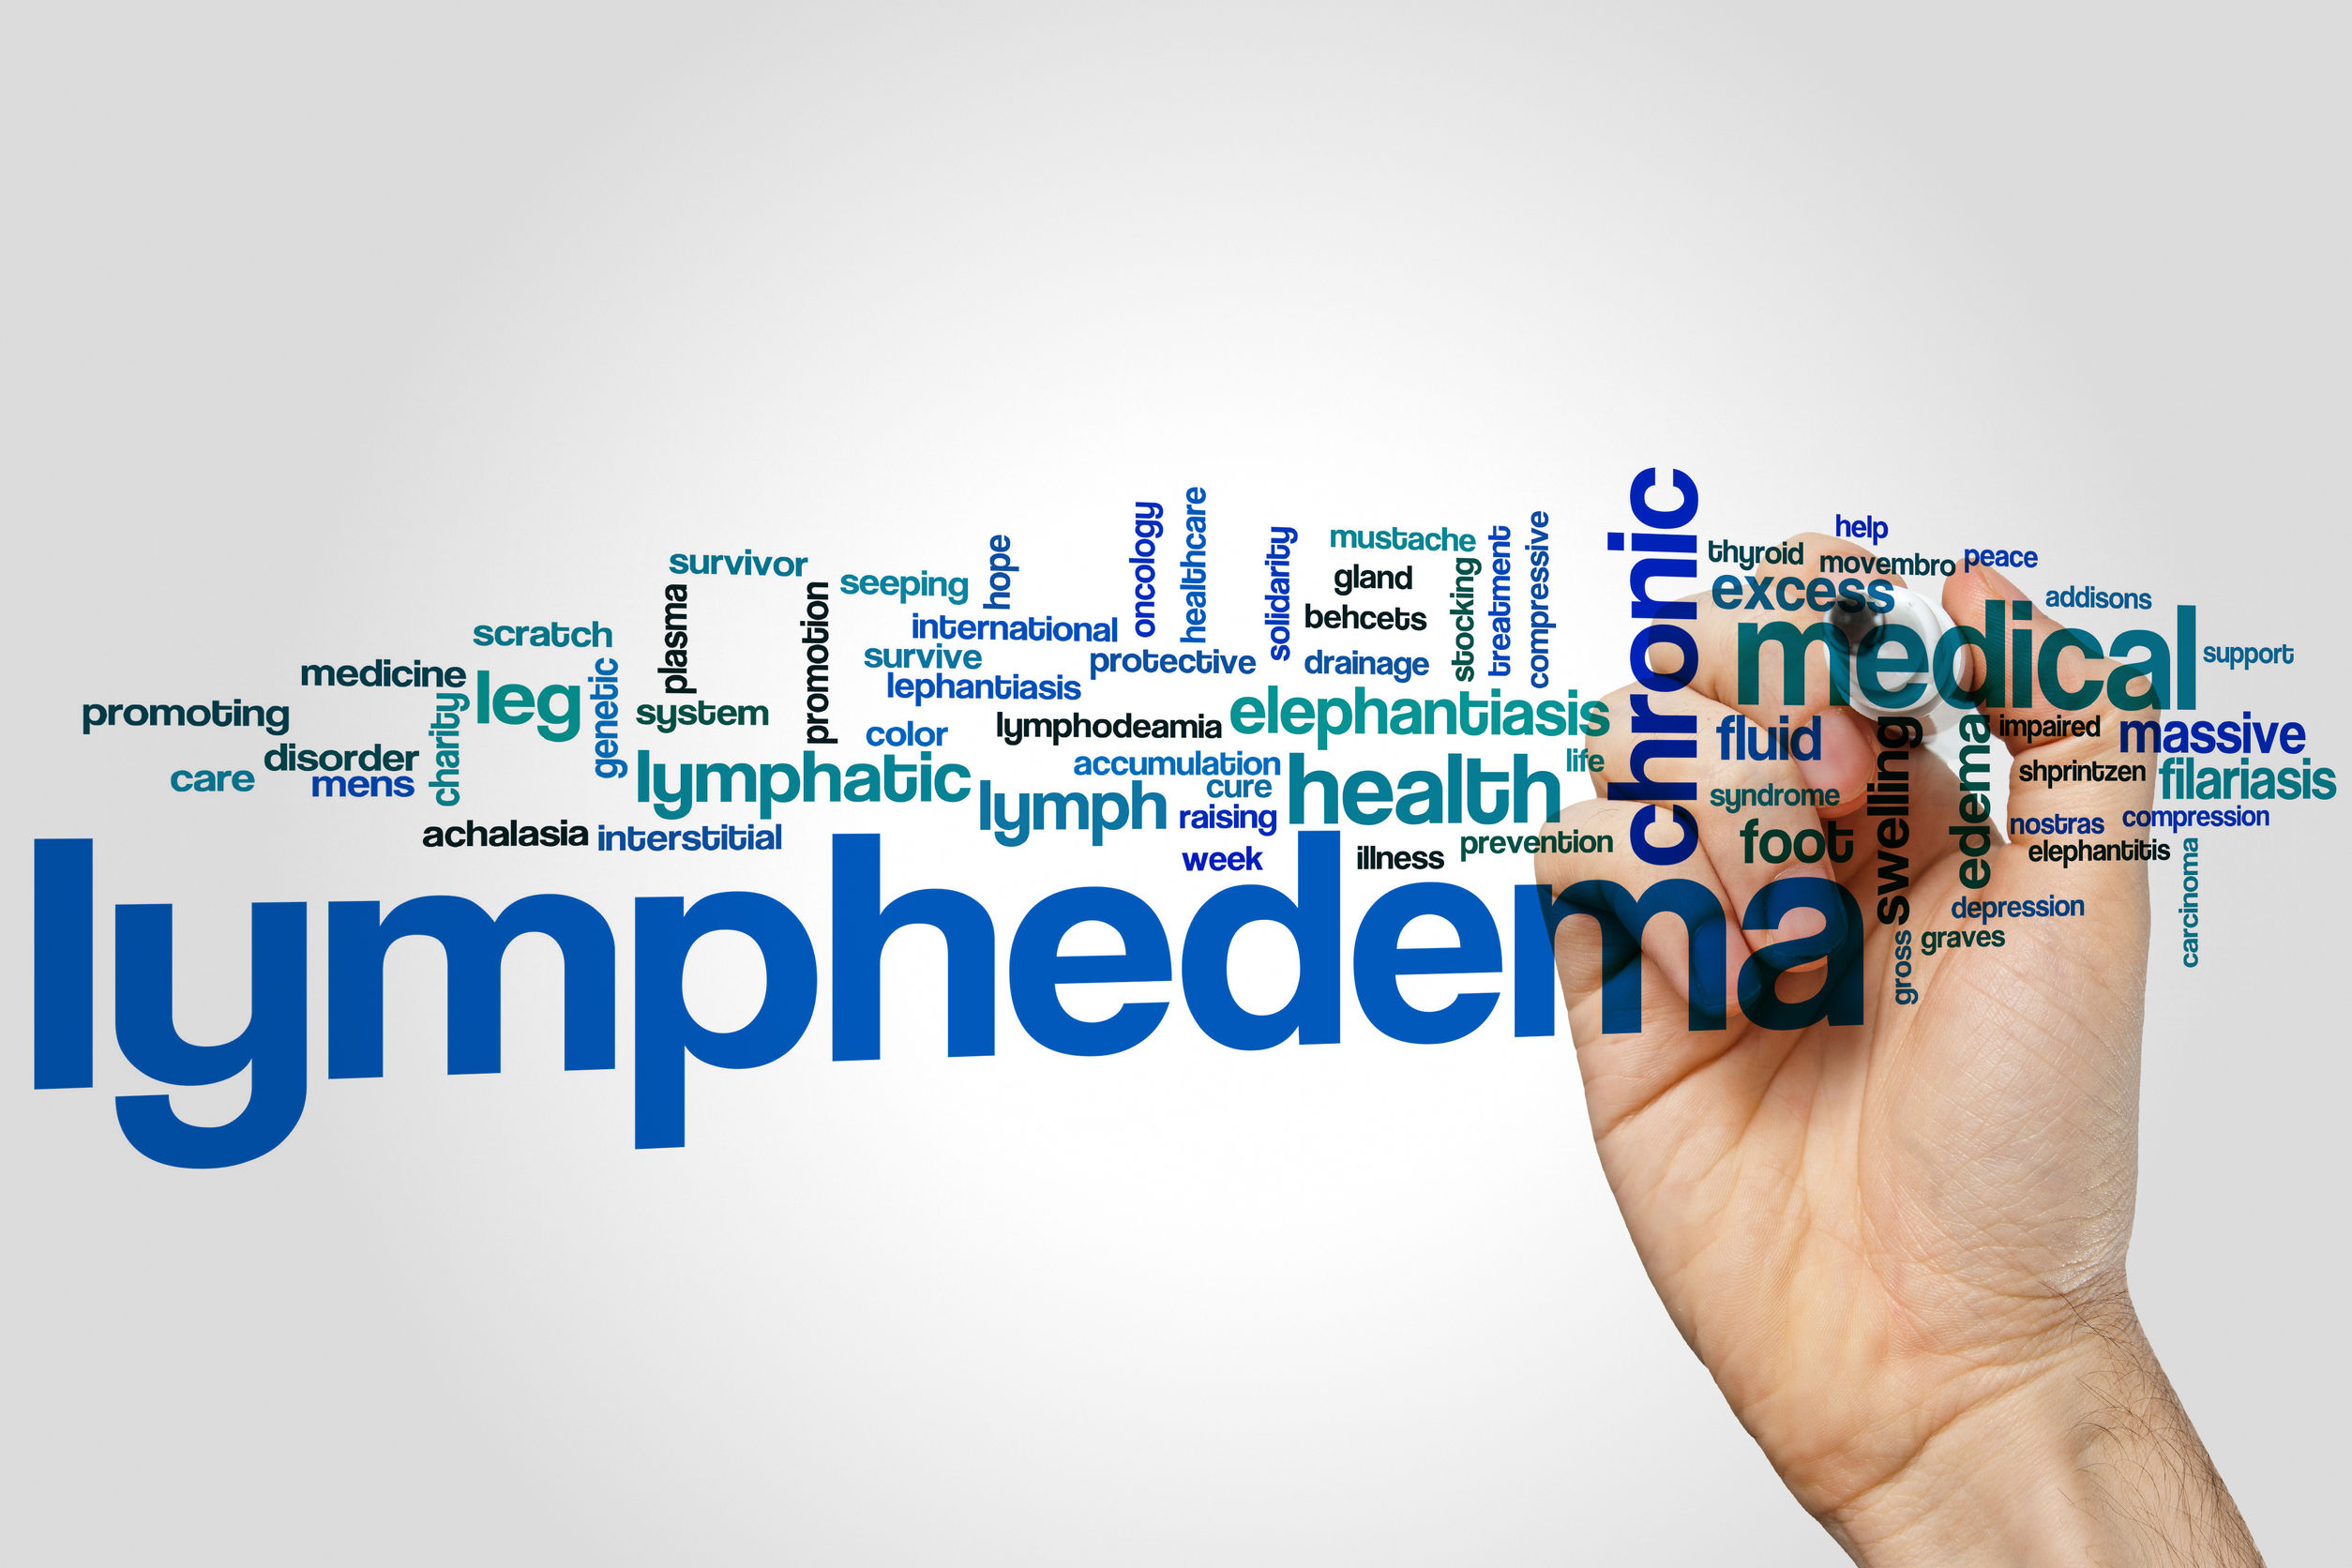 Common Symptoms of Lymphedema and How To Treat Them